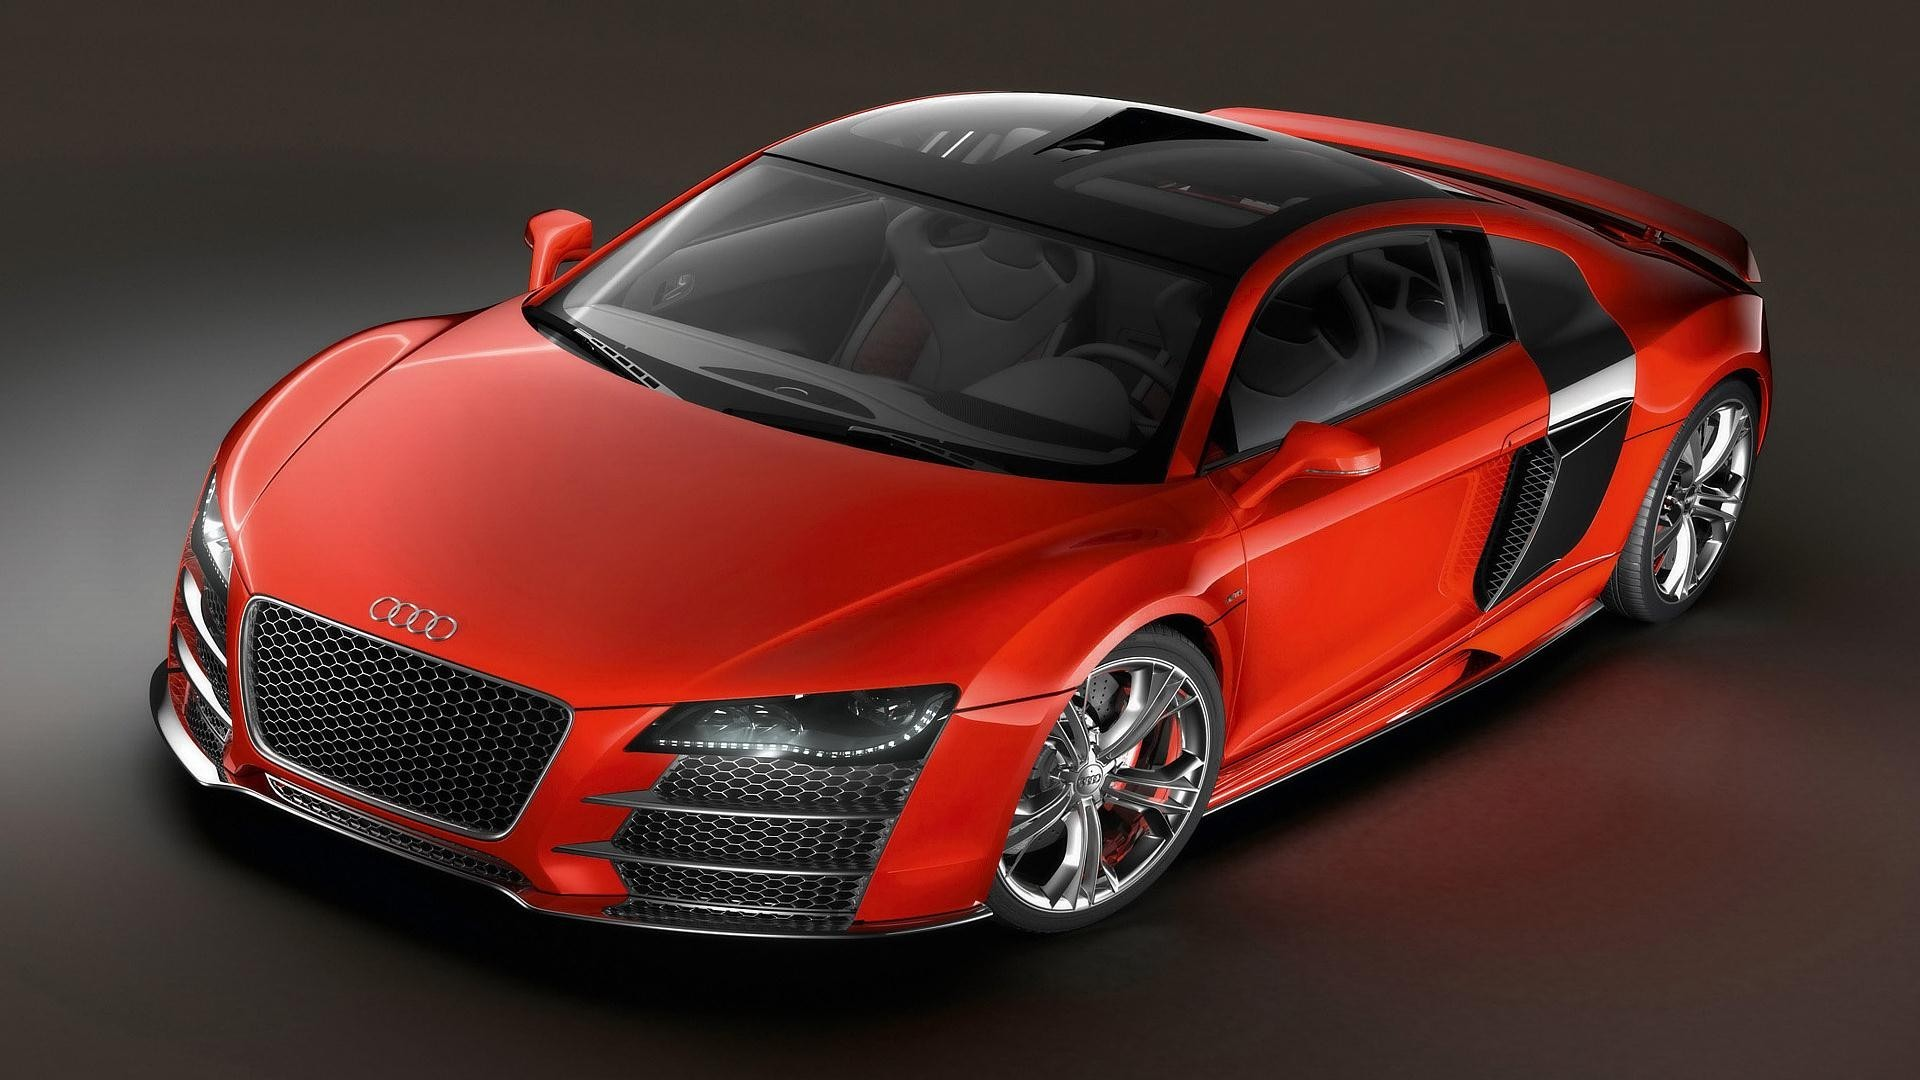 red cars Audi audi HD Wallpaper